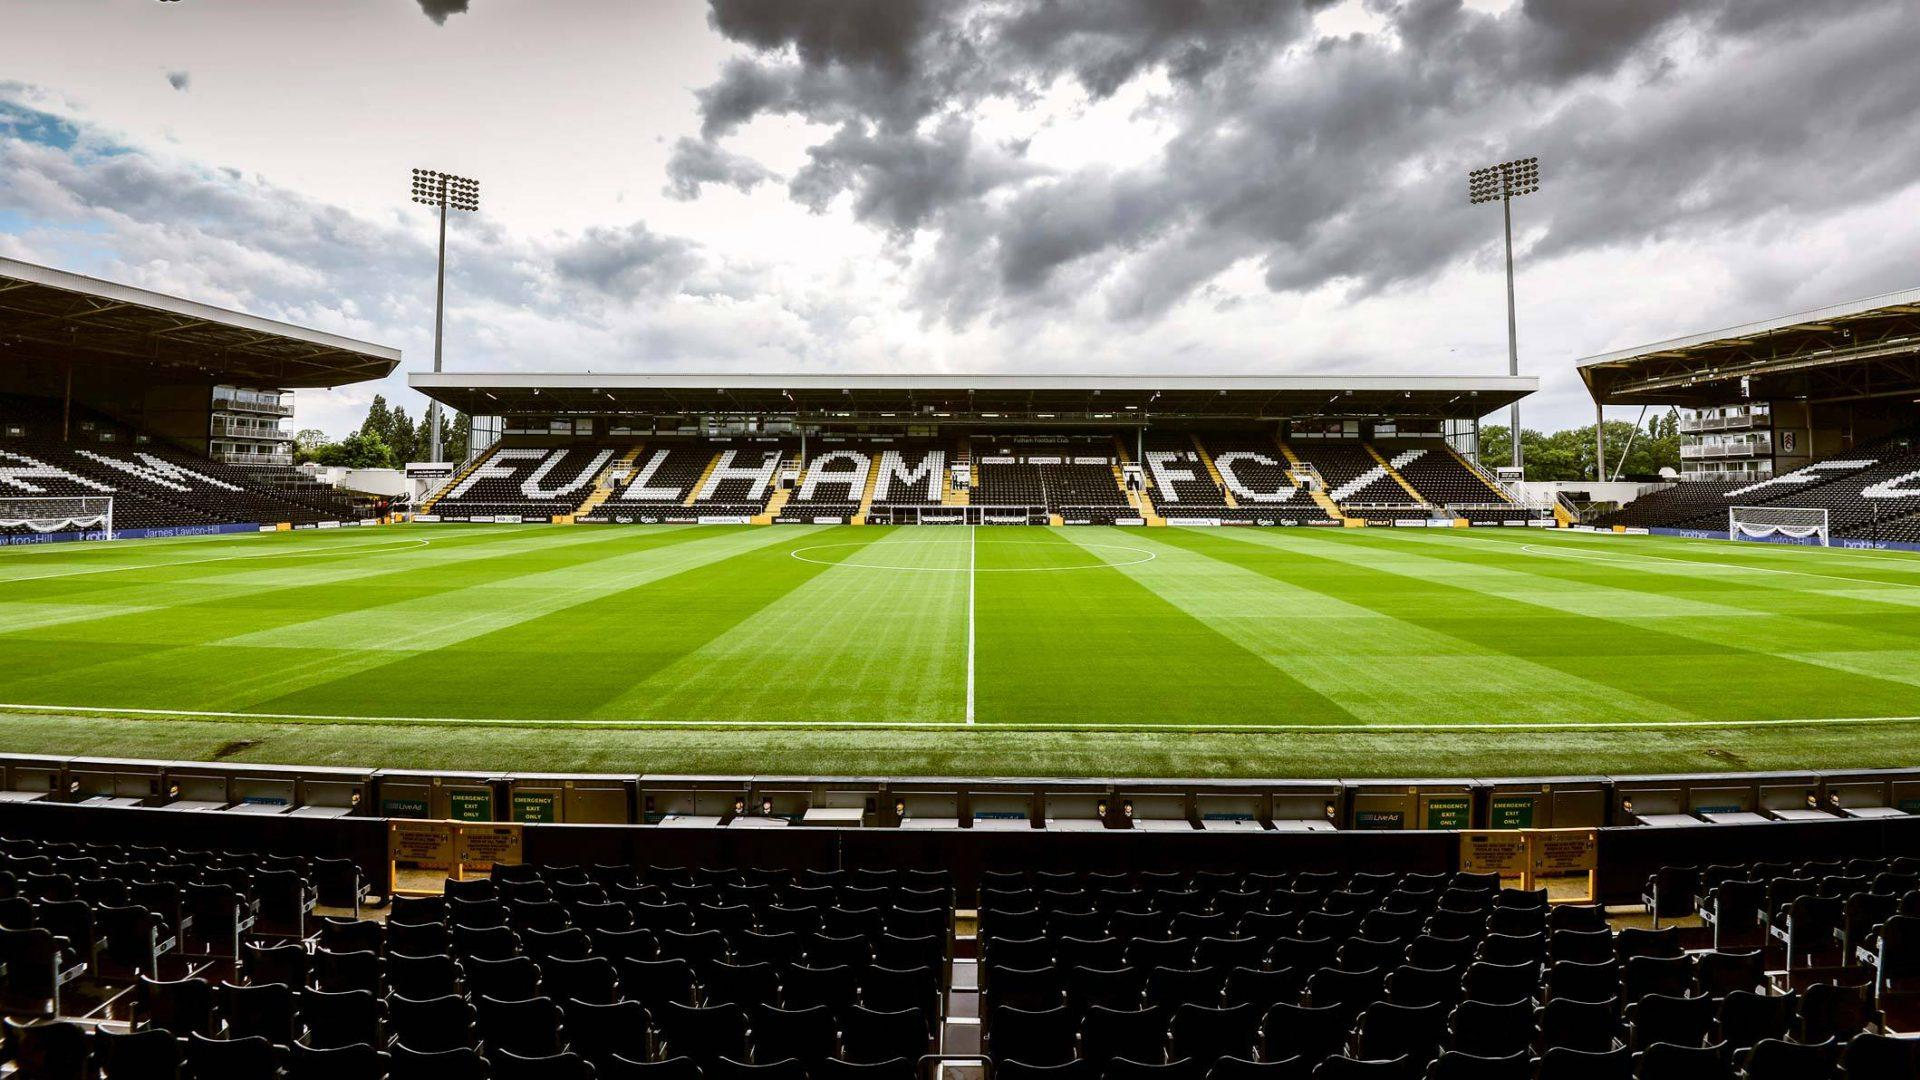 HD Wallpapers Of Fulham FC's Stadium